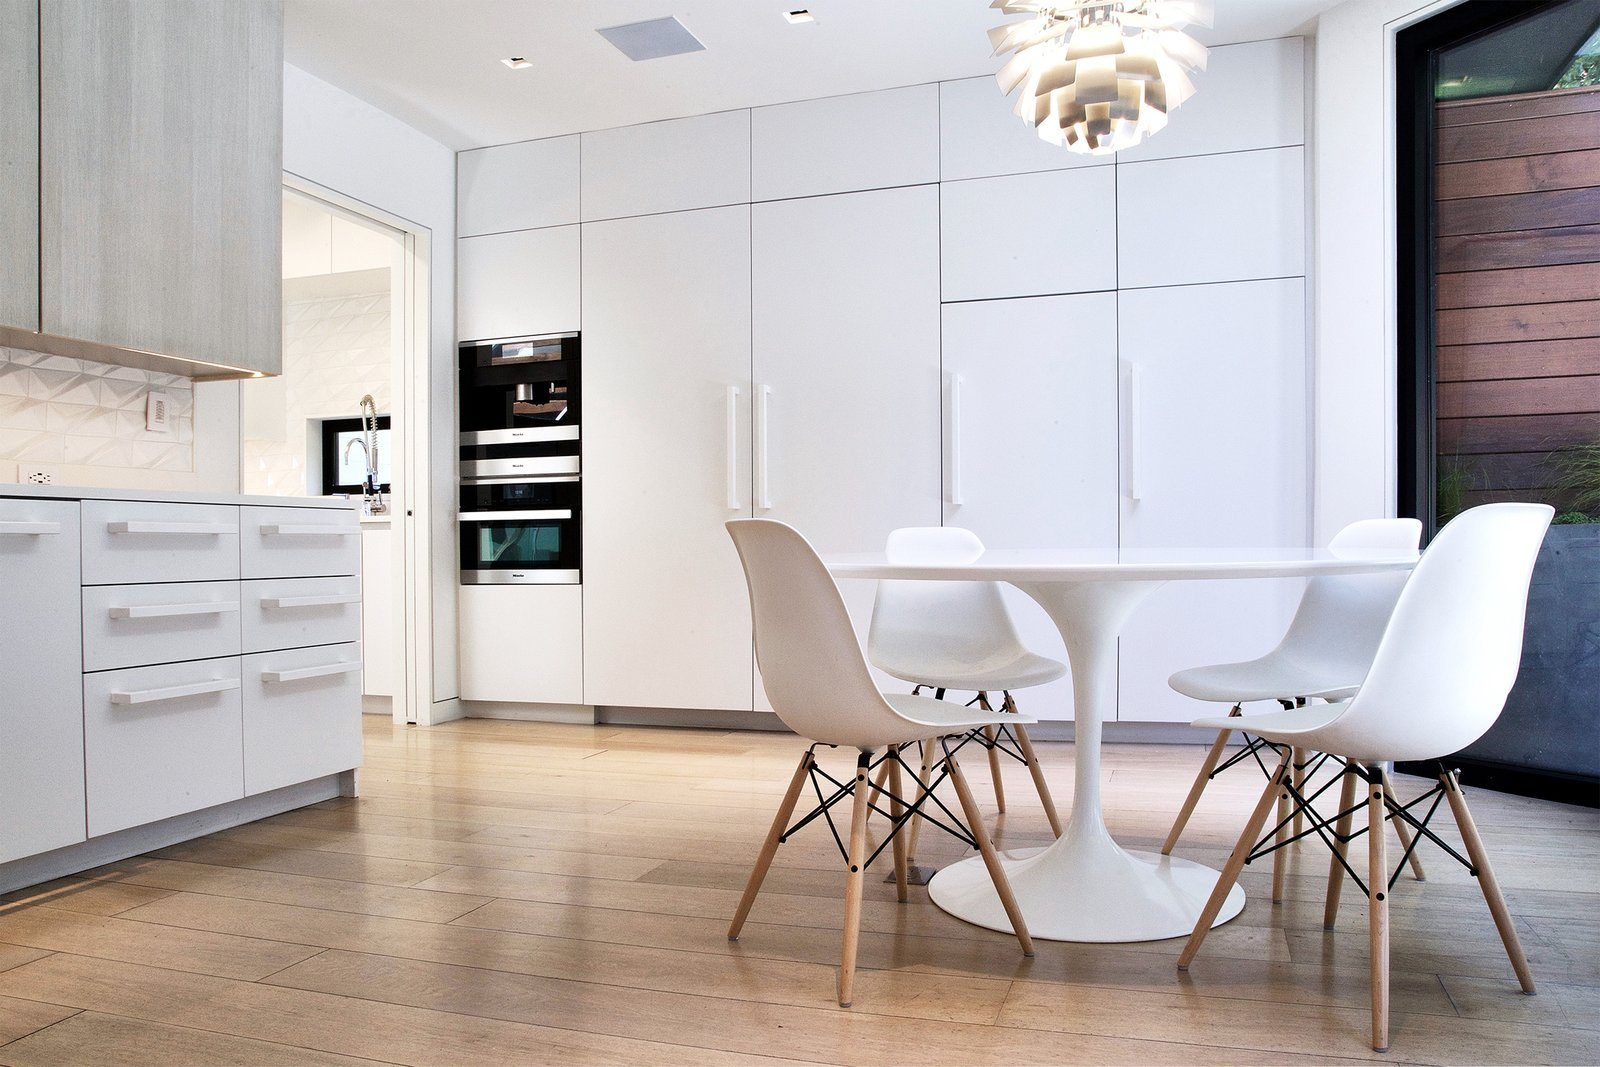 Breakfast Room - Saarinen Tulip Table, Eames side chairs, Miele appliances, Louis Poulsen PH Stainless Steel Artichoke light Tagged: Dining Room, Chair, Table, Pendant Lighting, and Medium Hardwood Floor.  Lyon Residence by Diego Pacheco Design Practice